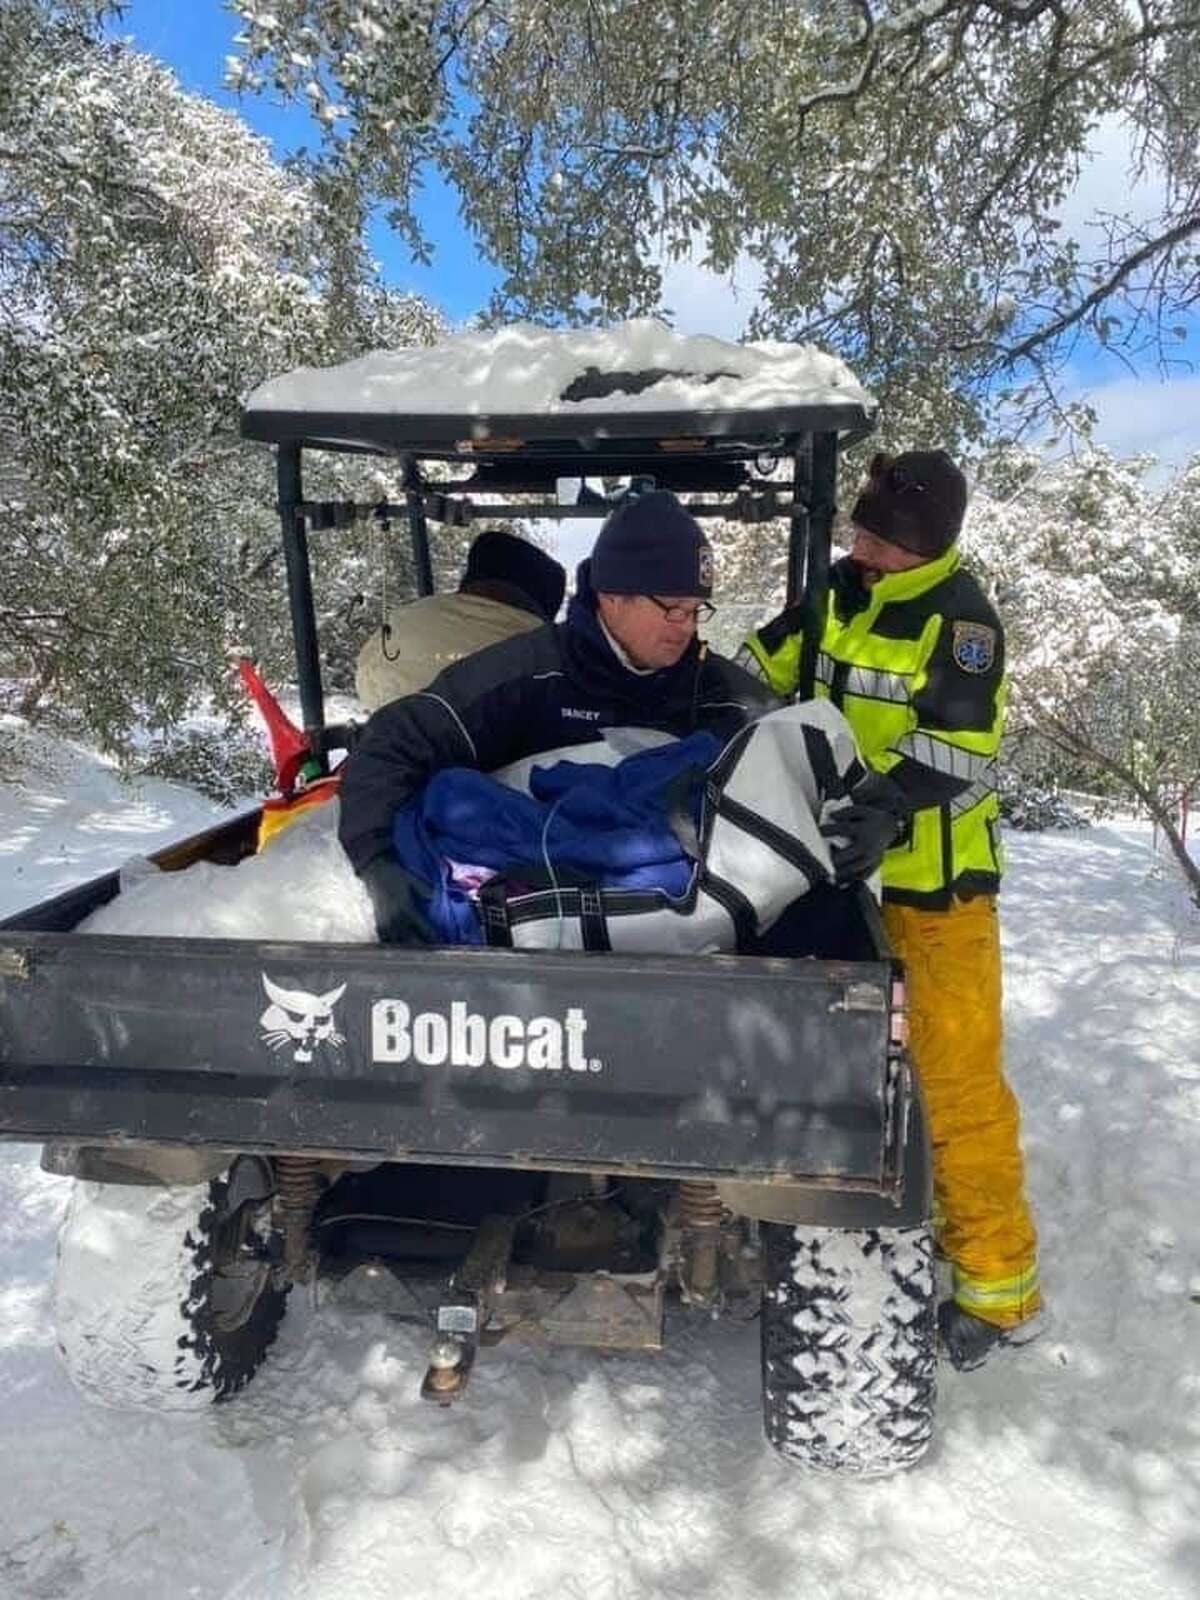 With an ambulance stuck in the snow, Austin paramedics had to resort to warming a 98-year-old patient in a utility vehicle.